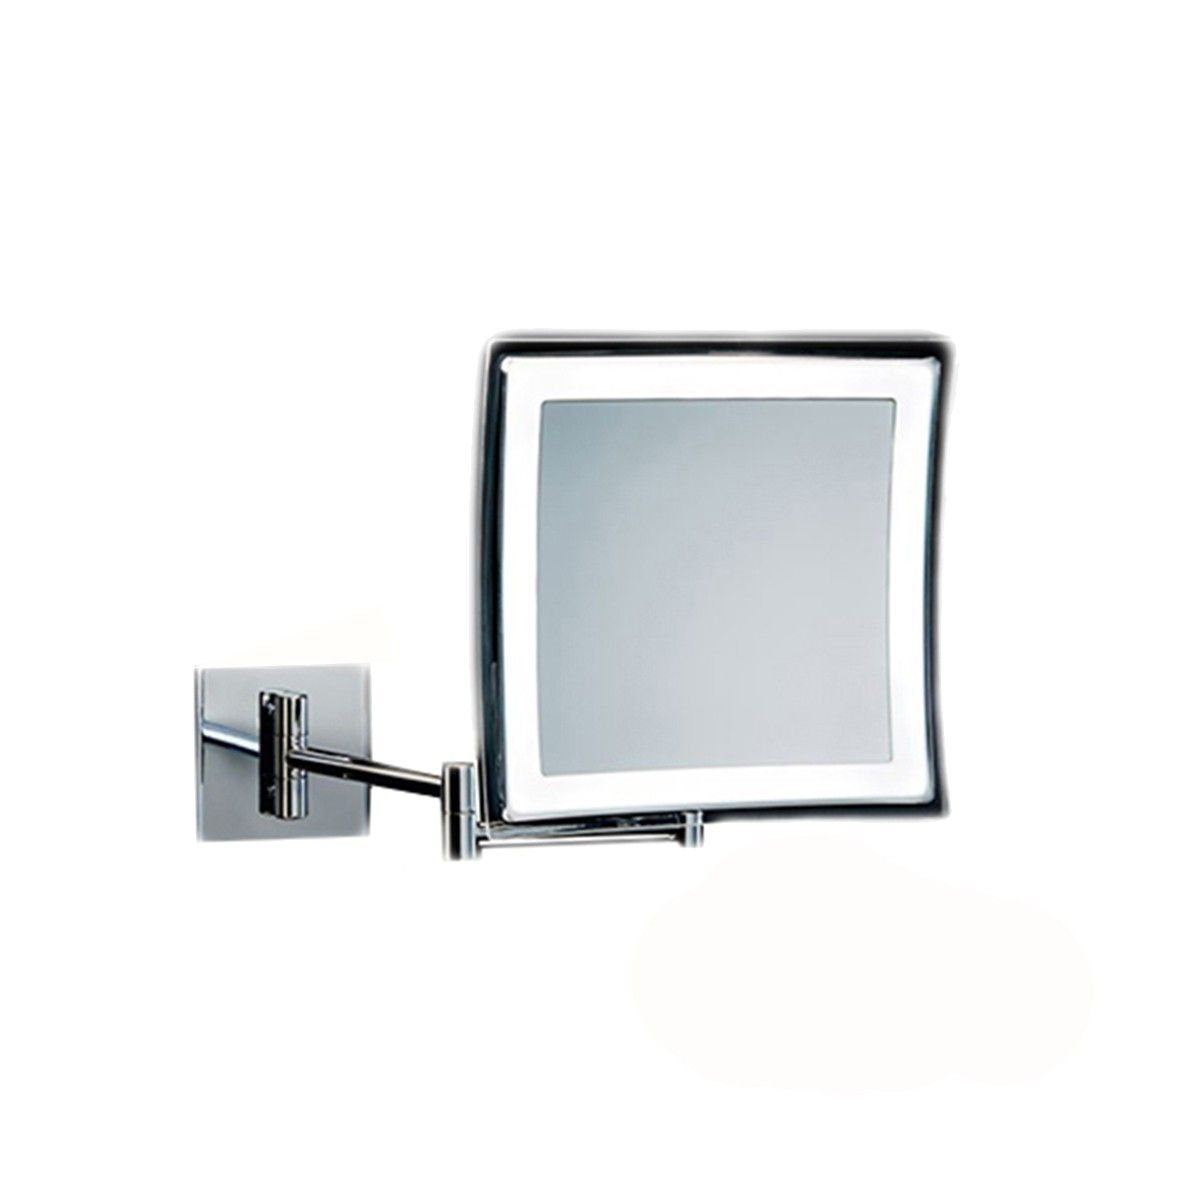 Smile 850 Hard Wired Wall Mounted Magnifying Mirror 5x Wall